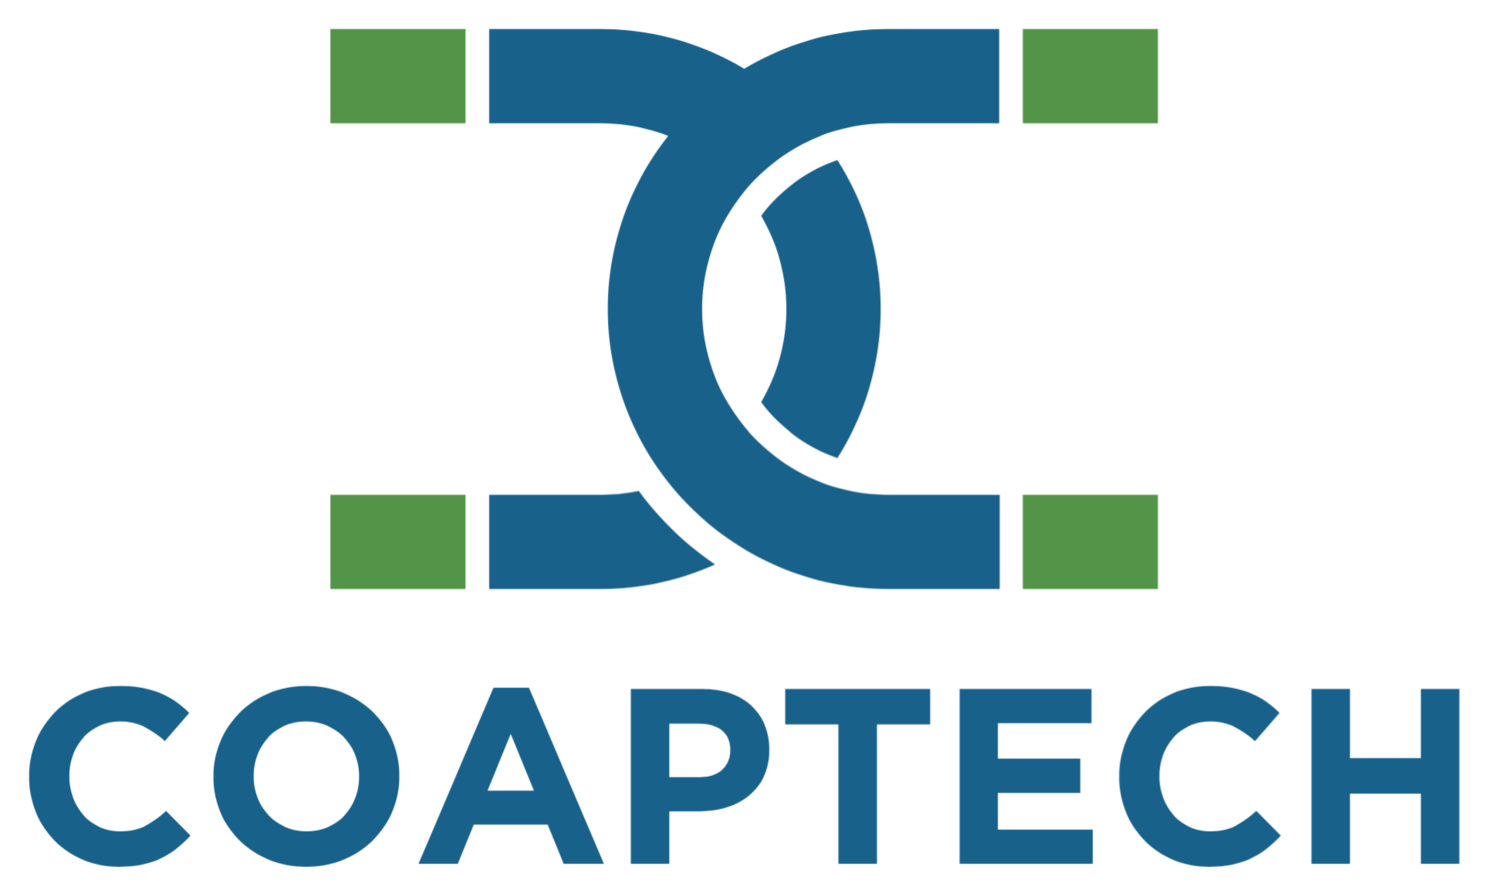 Coaptech